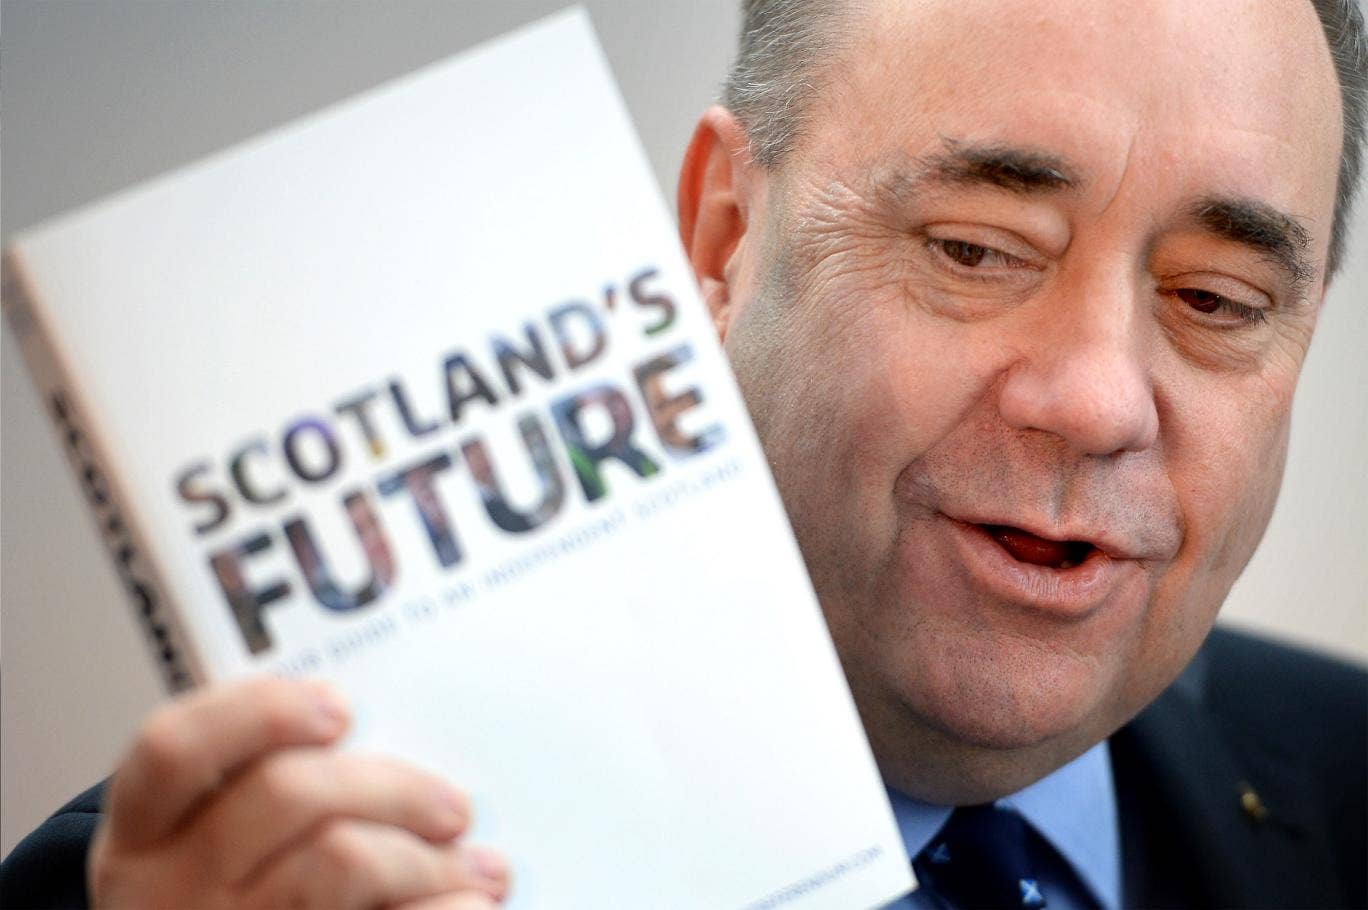 Scottish First Minister Alex Salmond presents the White Paper for Scottish independence